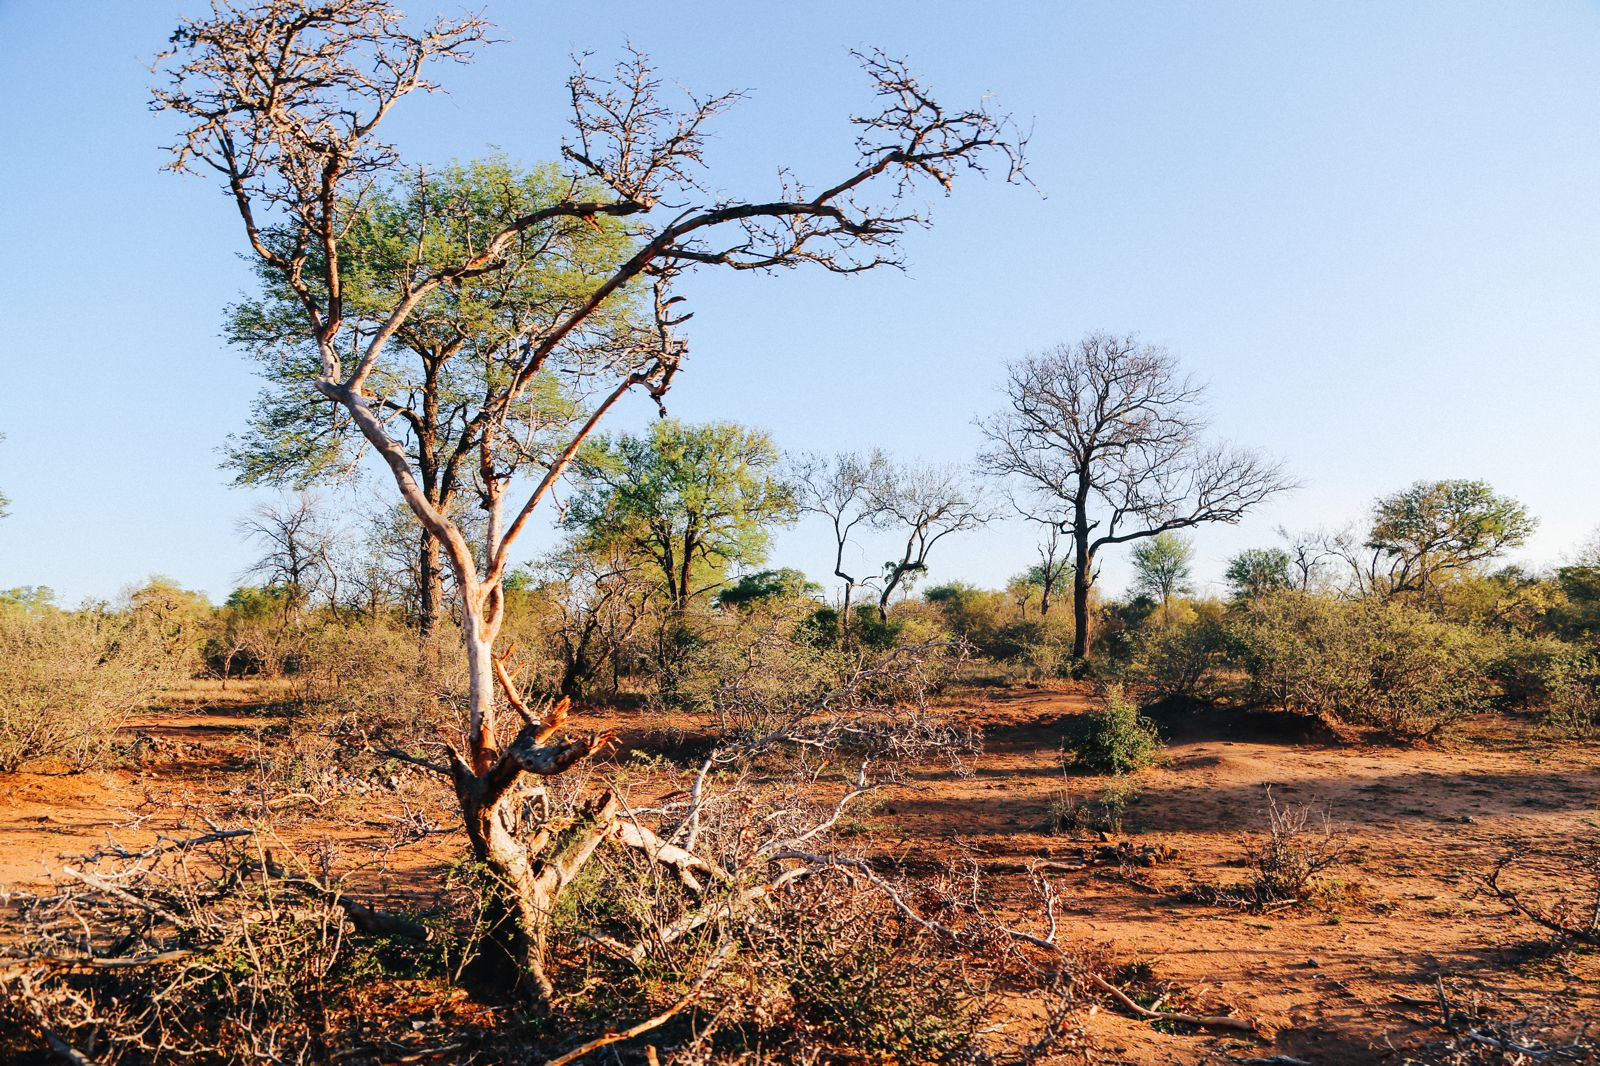 Midnight Lions, Skittish Giraffes And The Deadliest Of The Safari Big 5 In South Africa (49)